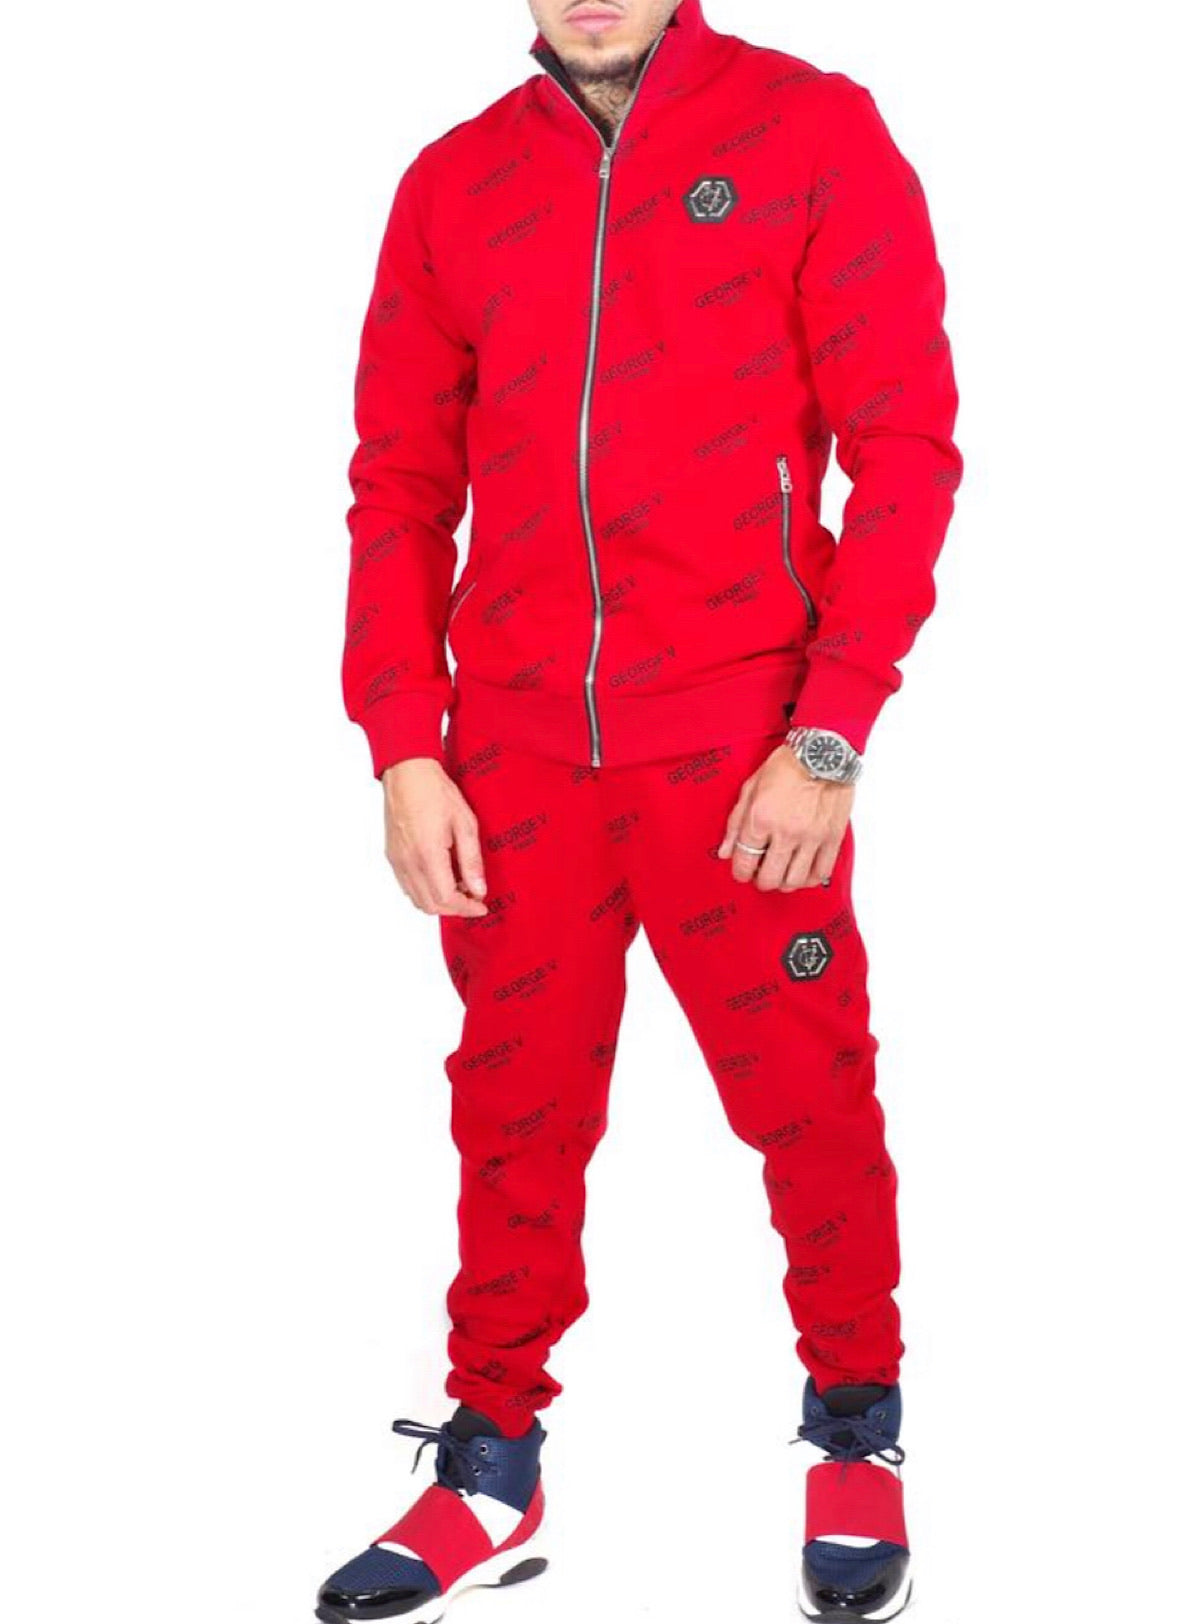 George V Sweatsuit - All Over Logo - Red - GV1004